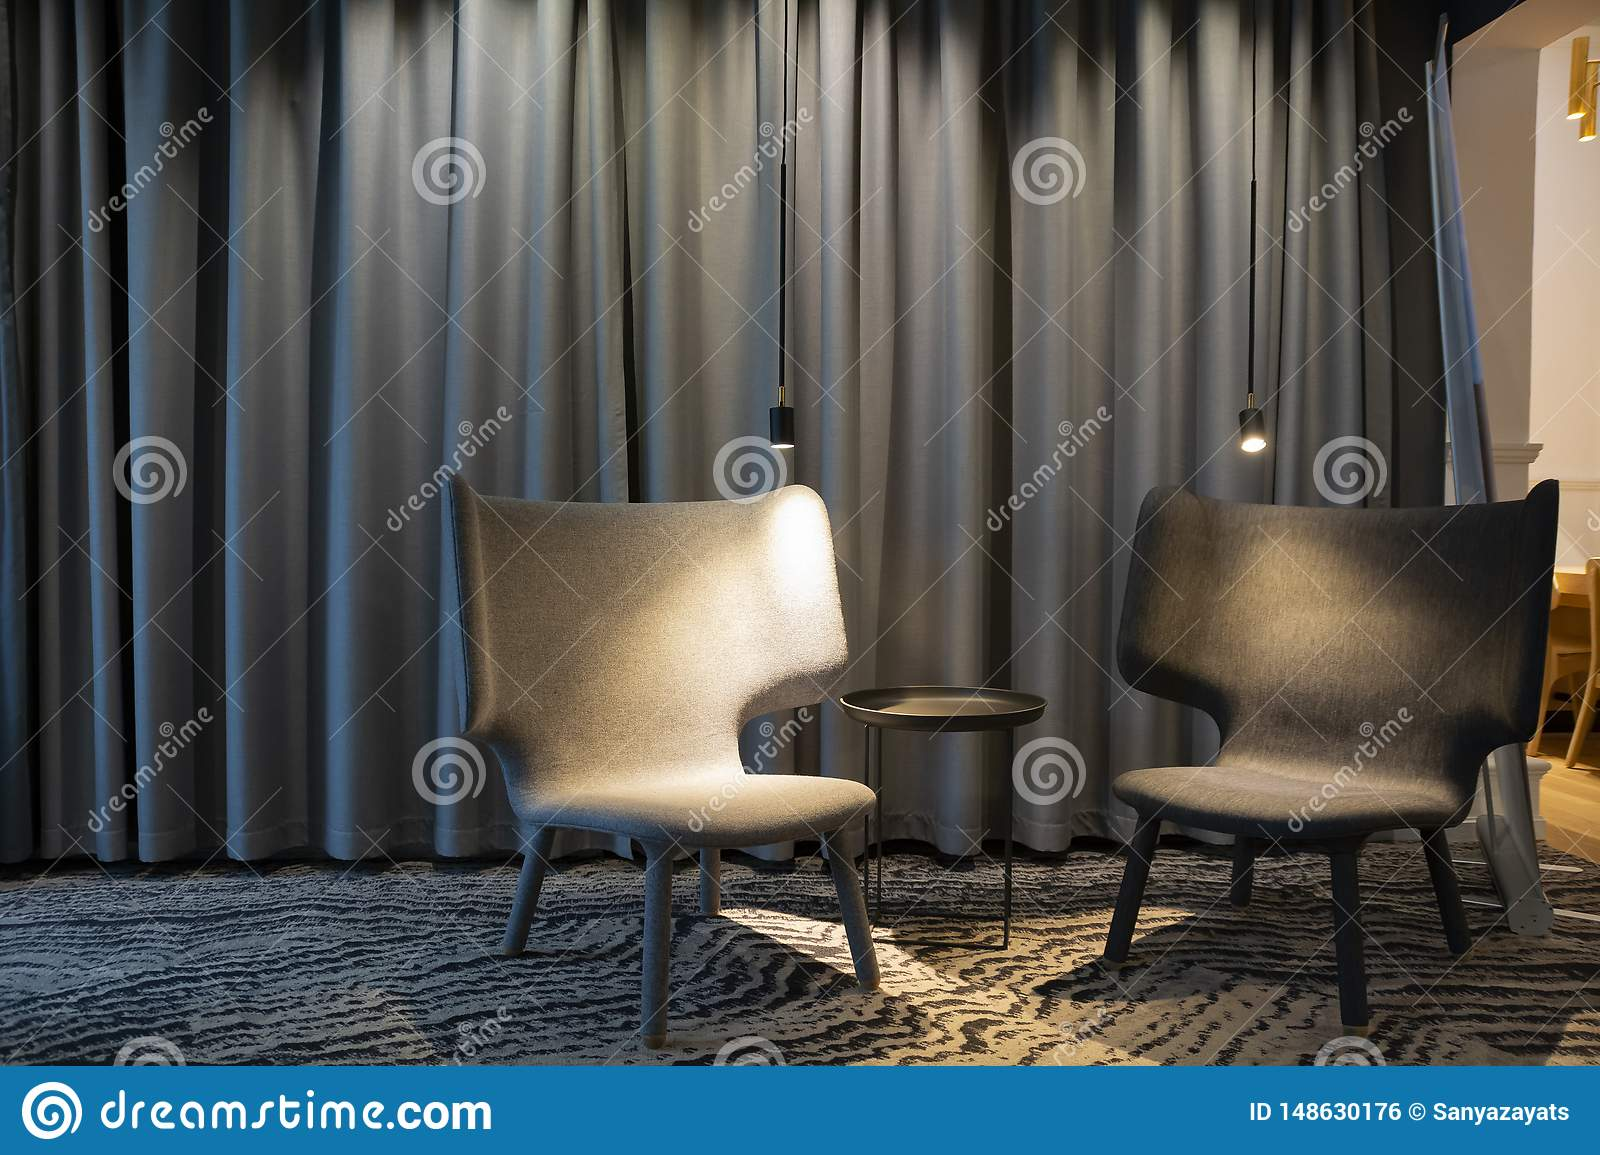 Two Empty Modern Grey Chair With Lights And A Table Between